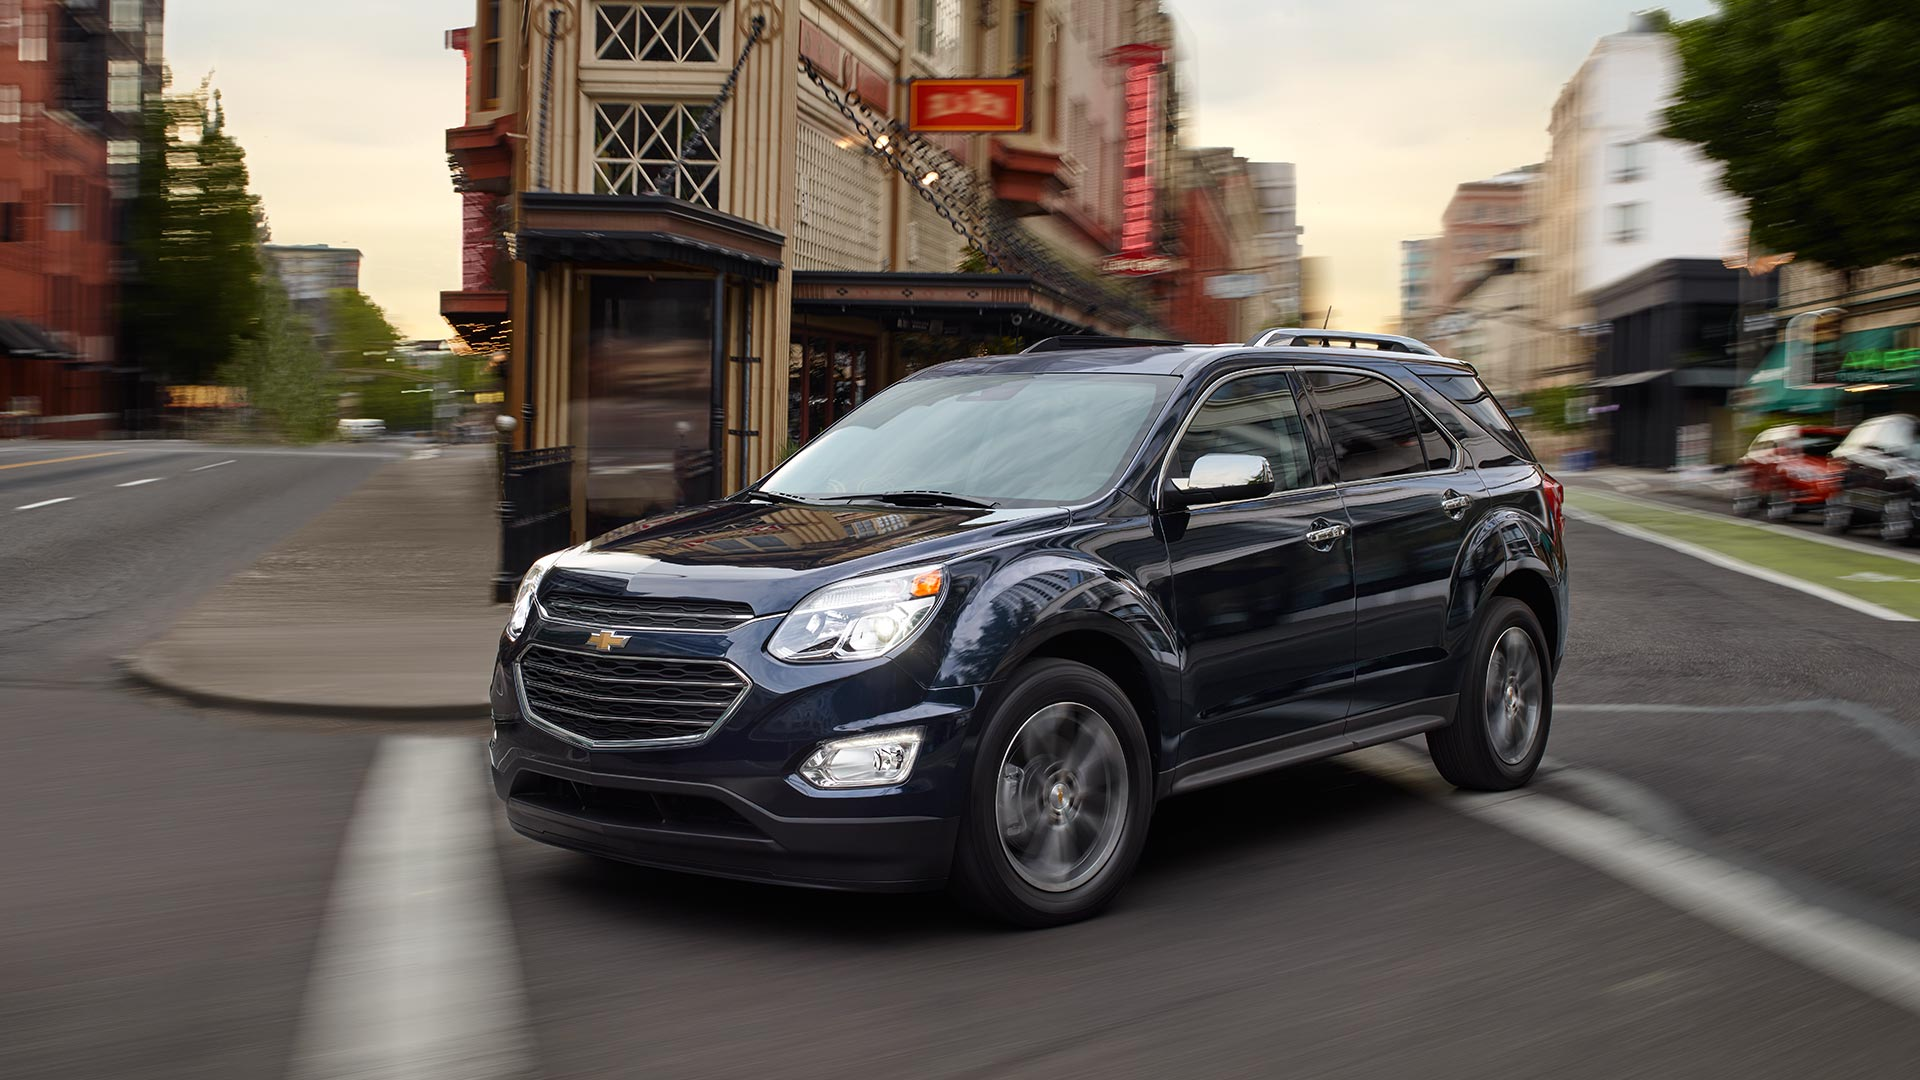 2017 Chevrolet Equinox for Sale near Annandale, VA